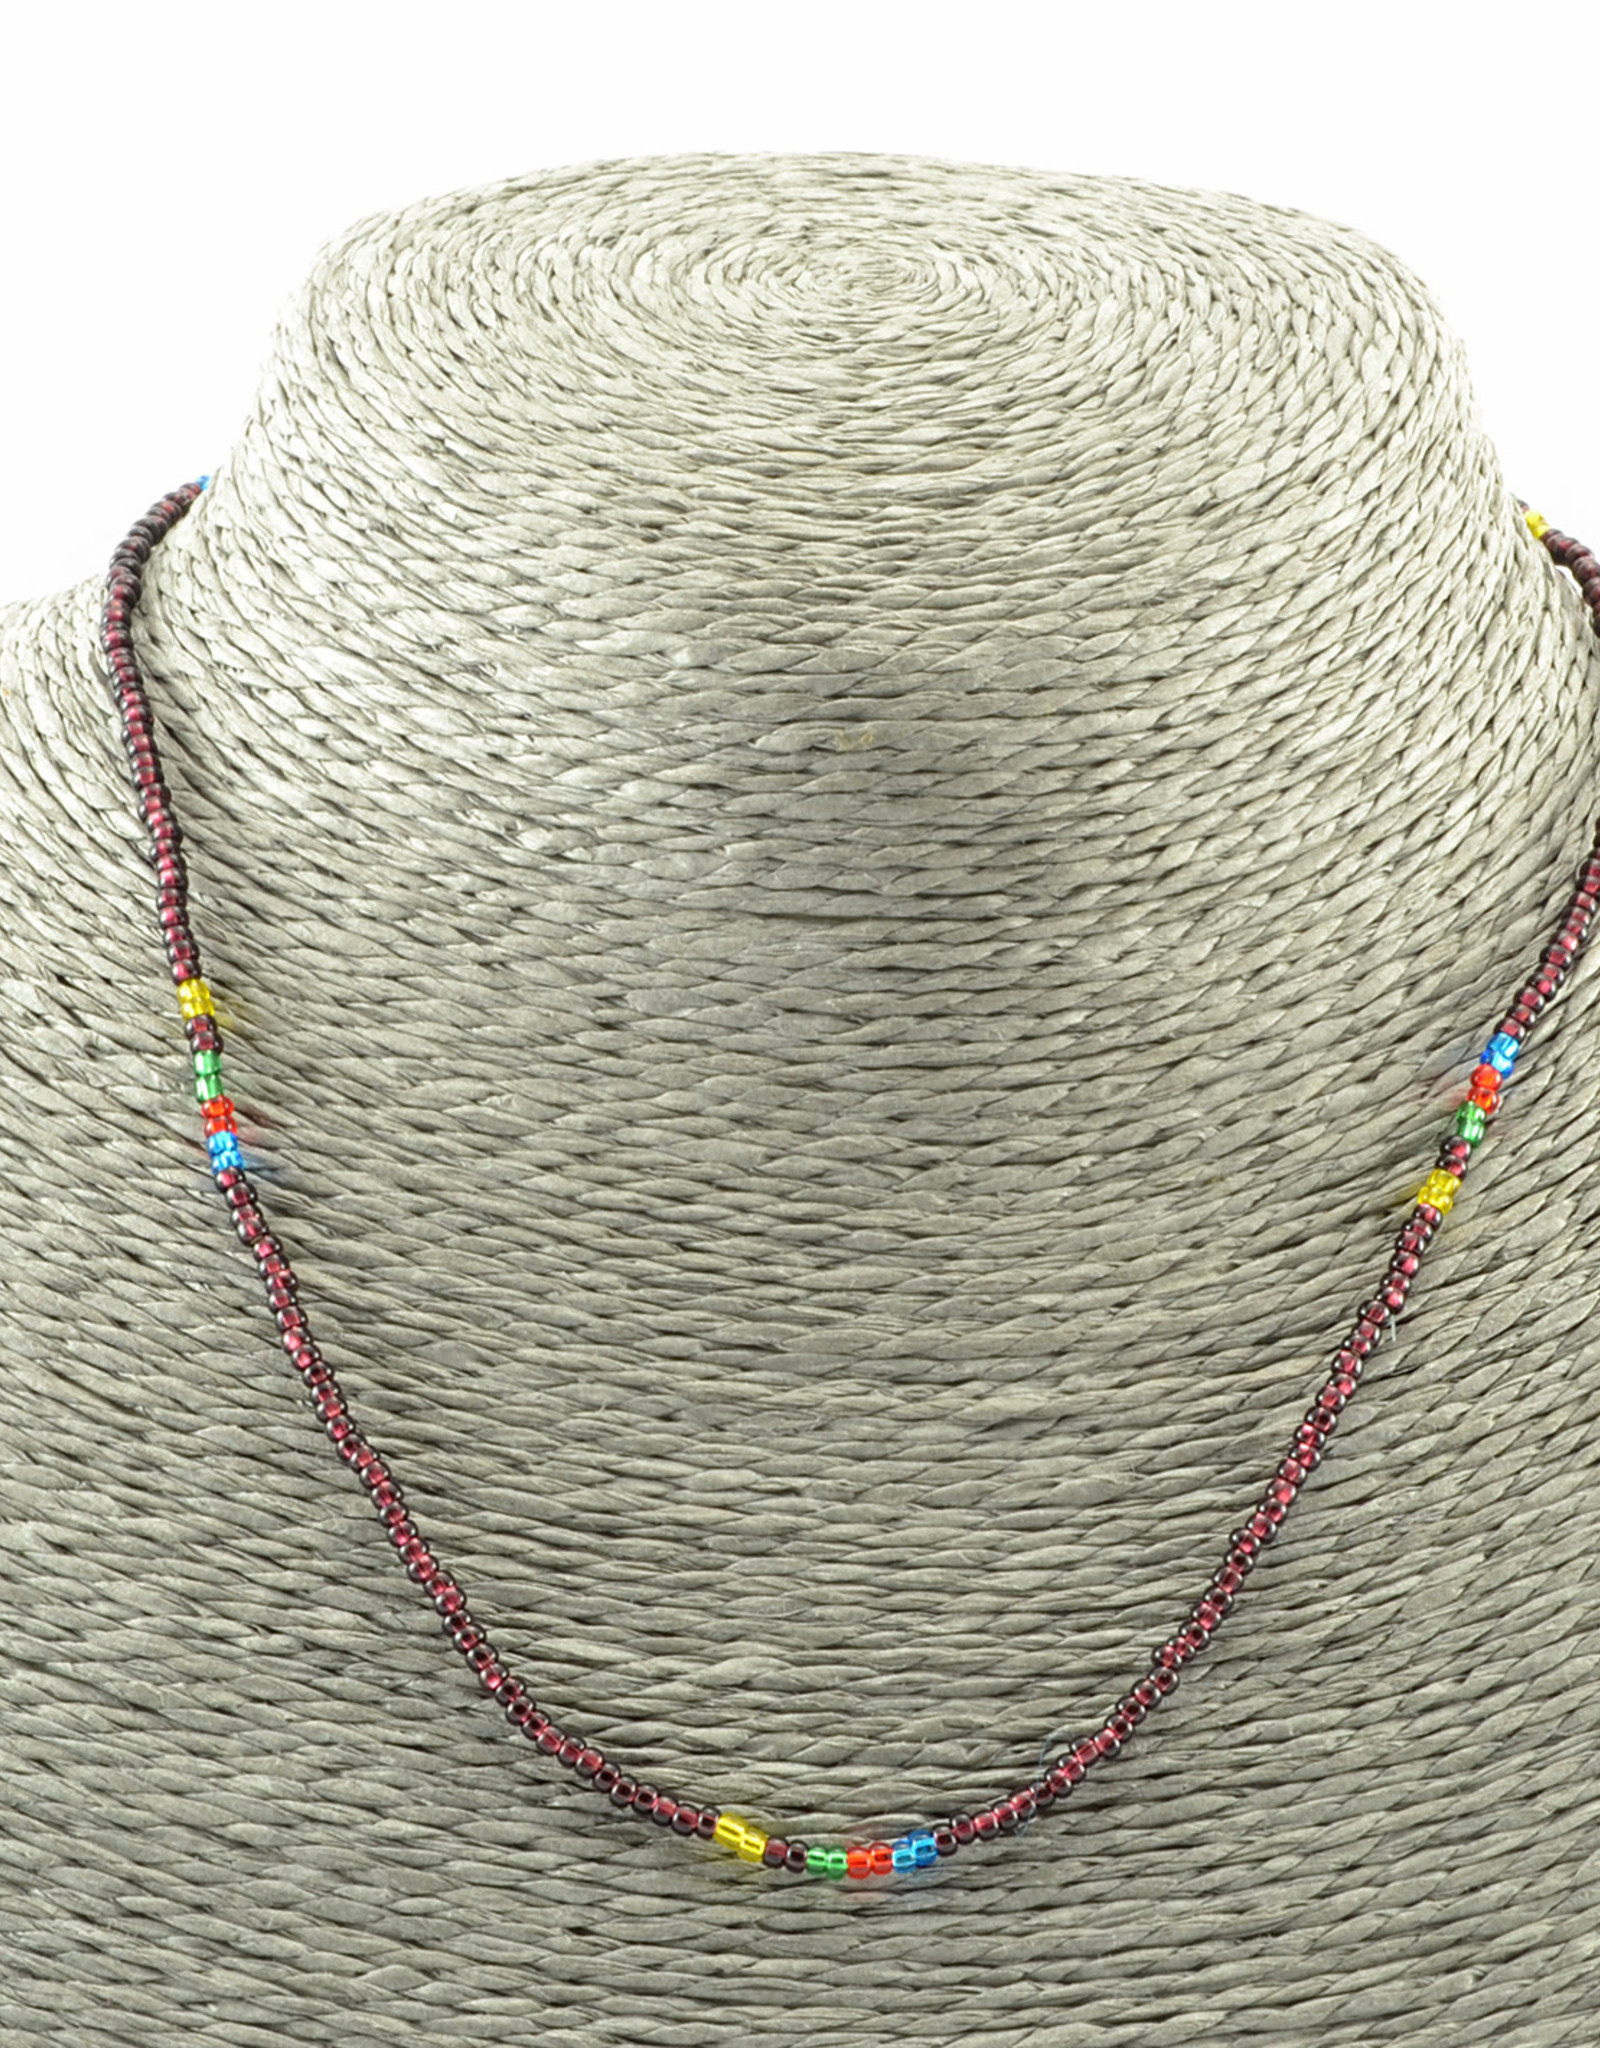 Lucia's Imports Rainbow Colors Necklace